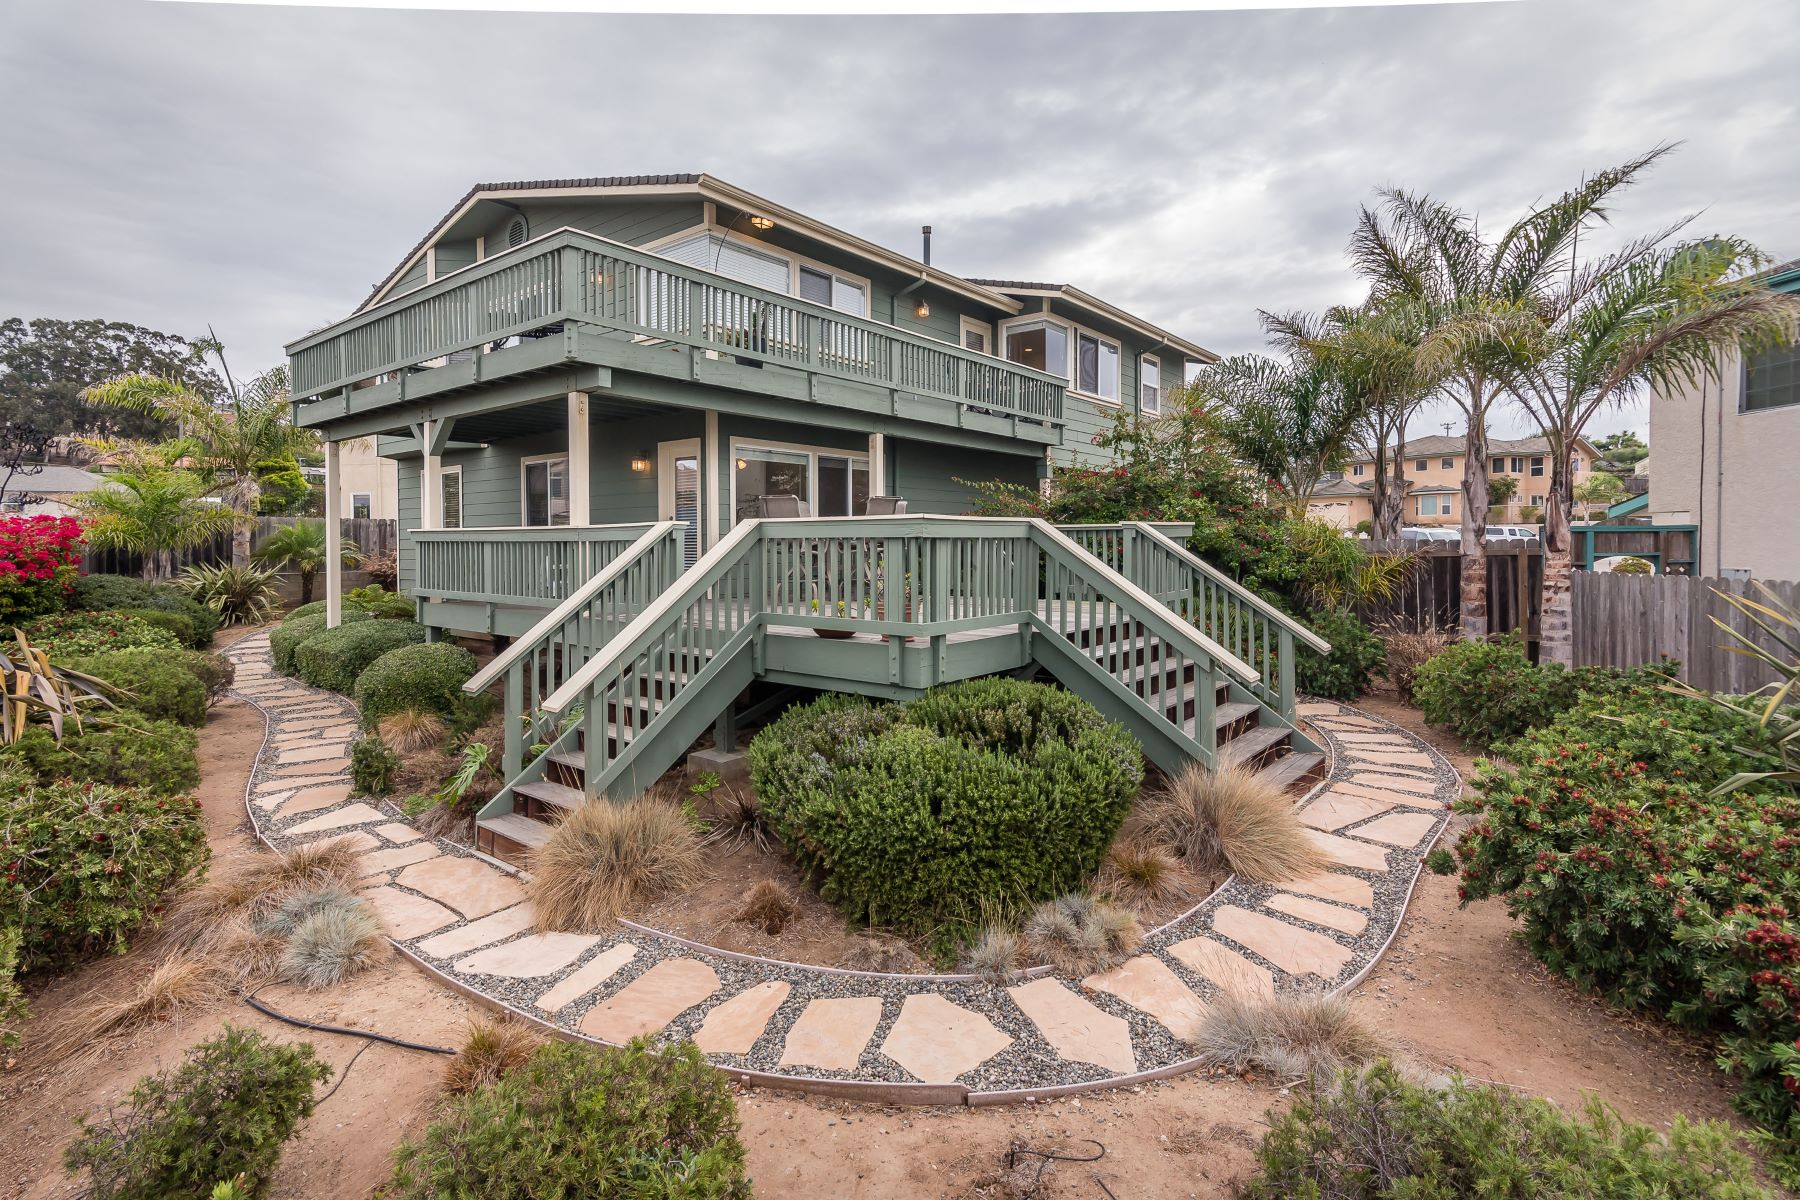 Single Family Homes for Active at Hampton Getaway in Morro ray! 612 Ironwood Court Morro Bay, California 93442 United States